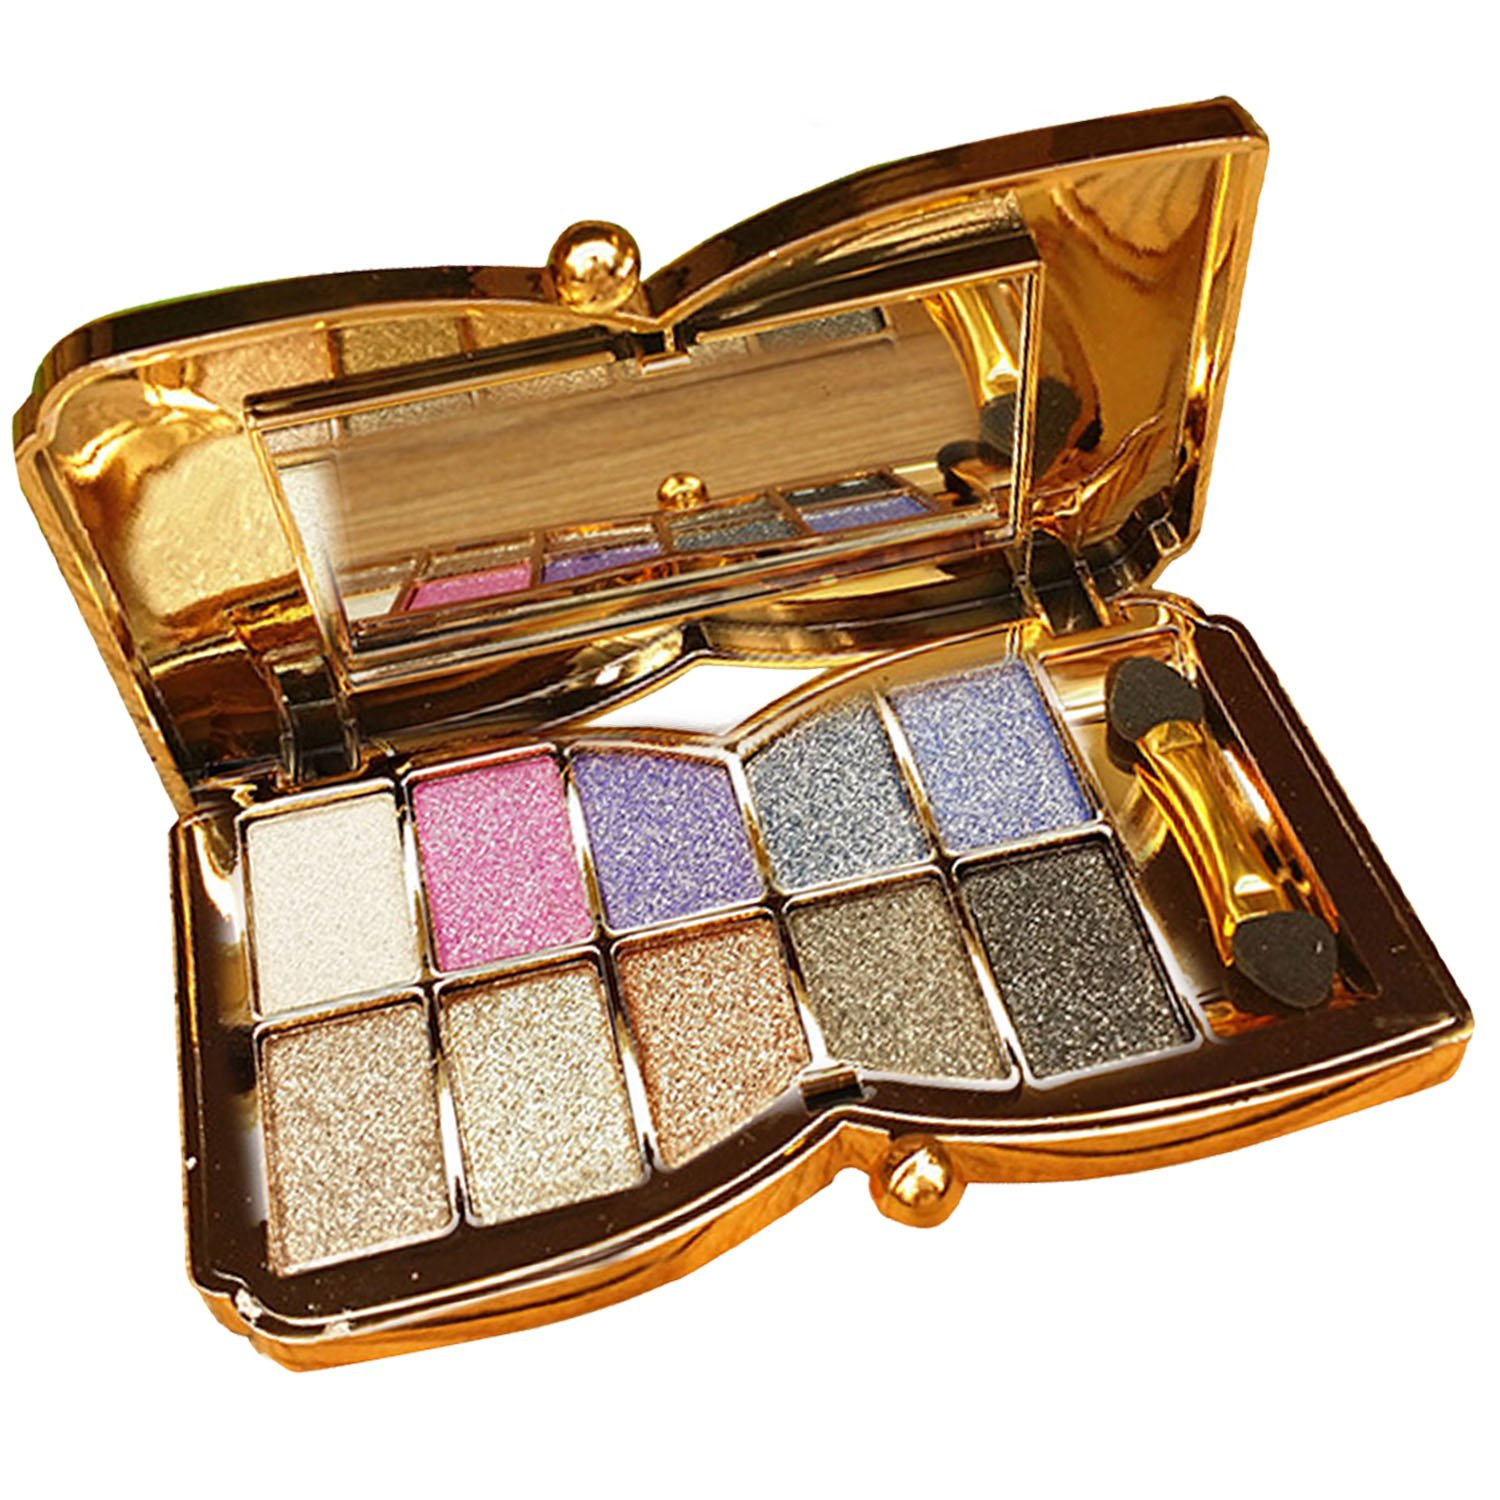 10 Colors Diamond Shining Eyeshadow Palette Makeup Cosmetic Foundation Eye shadow Palette with Double-sided Makeup Stick Tool Set Number 4 Elisona